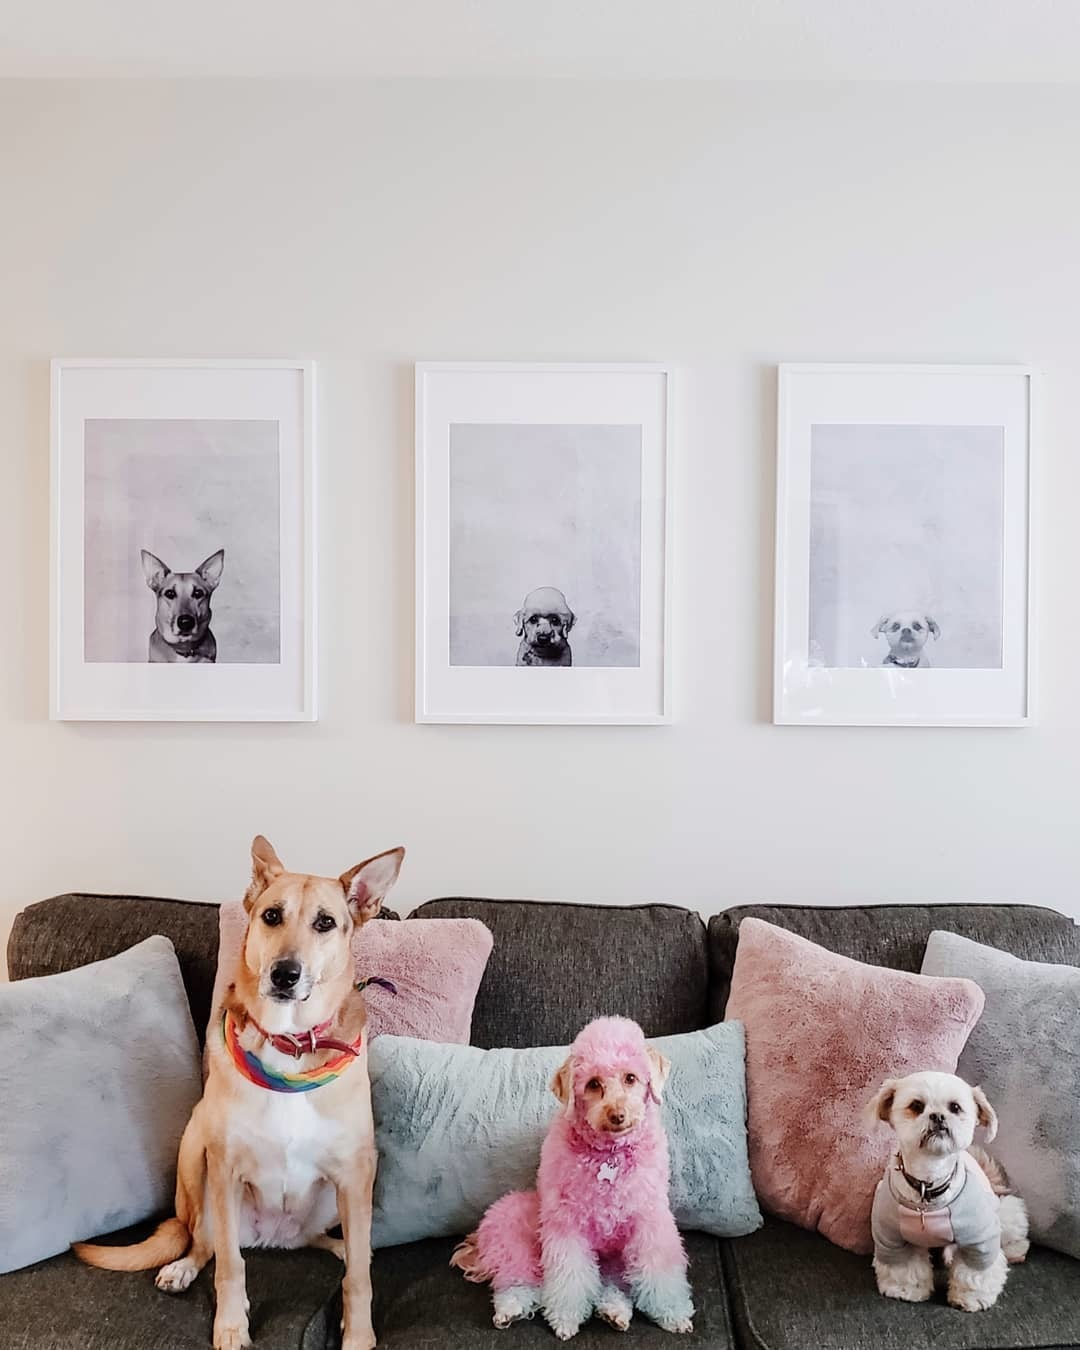 Portrait Photos of Dogs in White Picture Frames